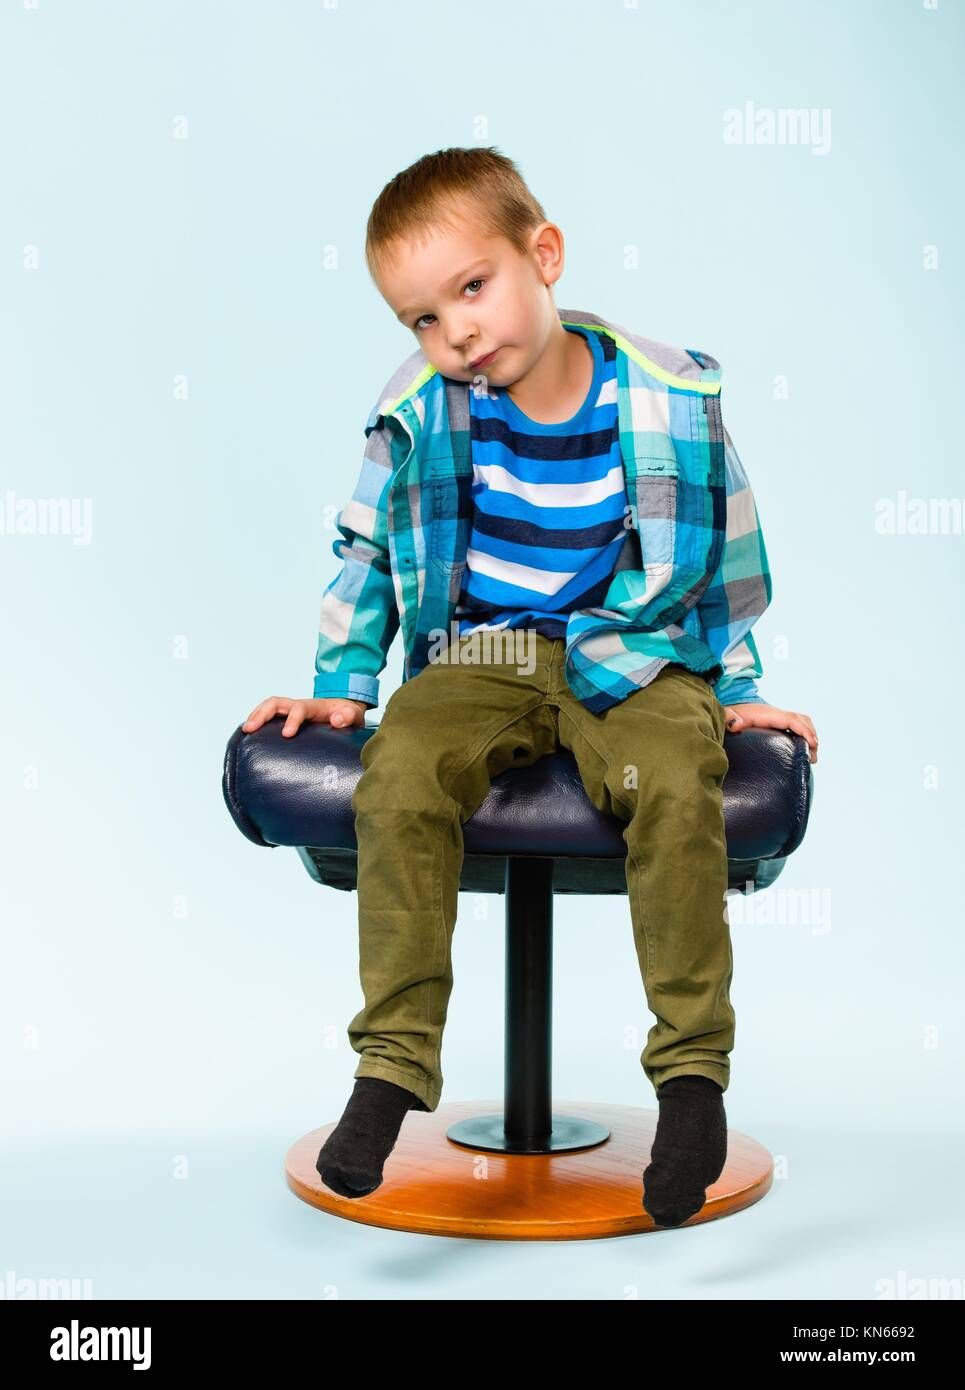 Little boy on posing with a footstool, studio shot and light blue background. - Stock Image